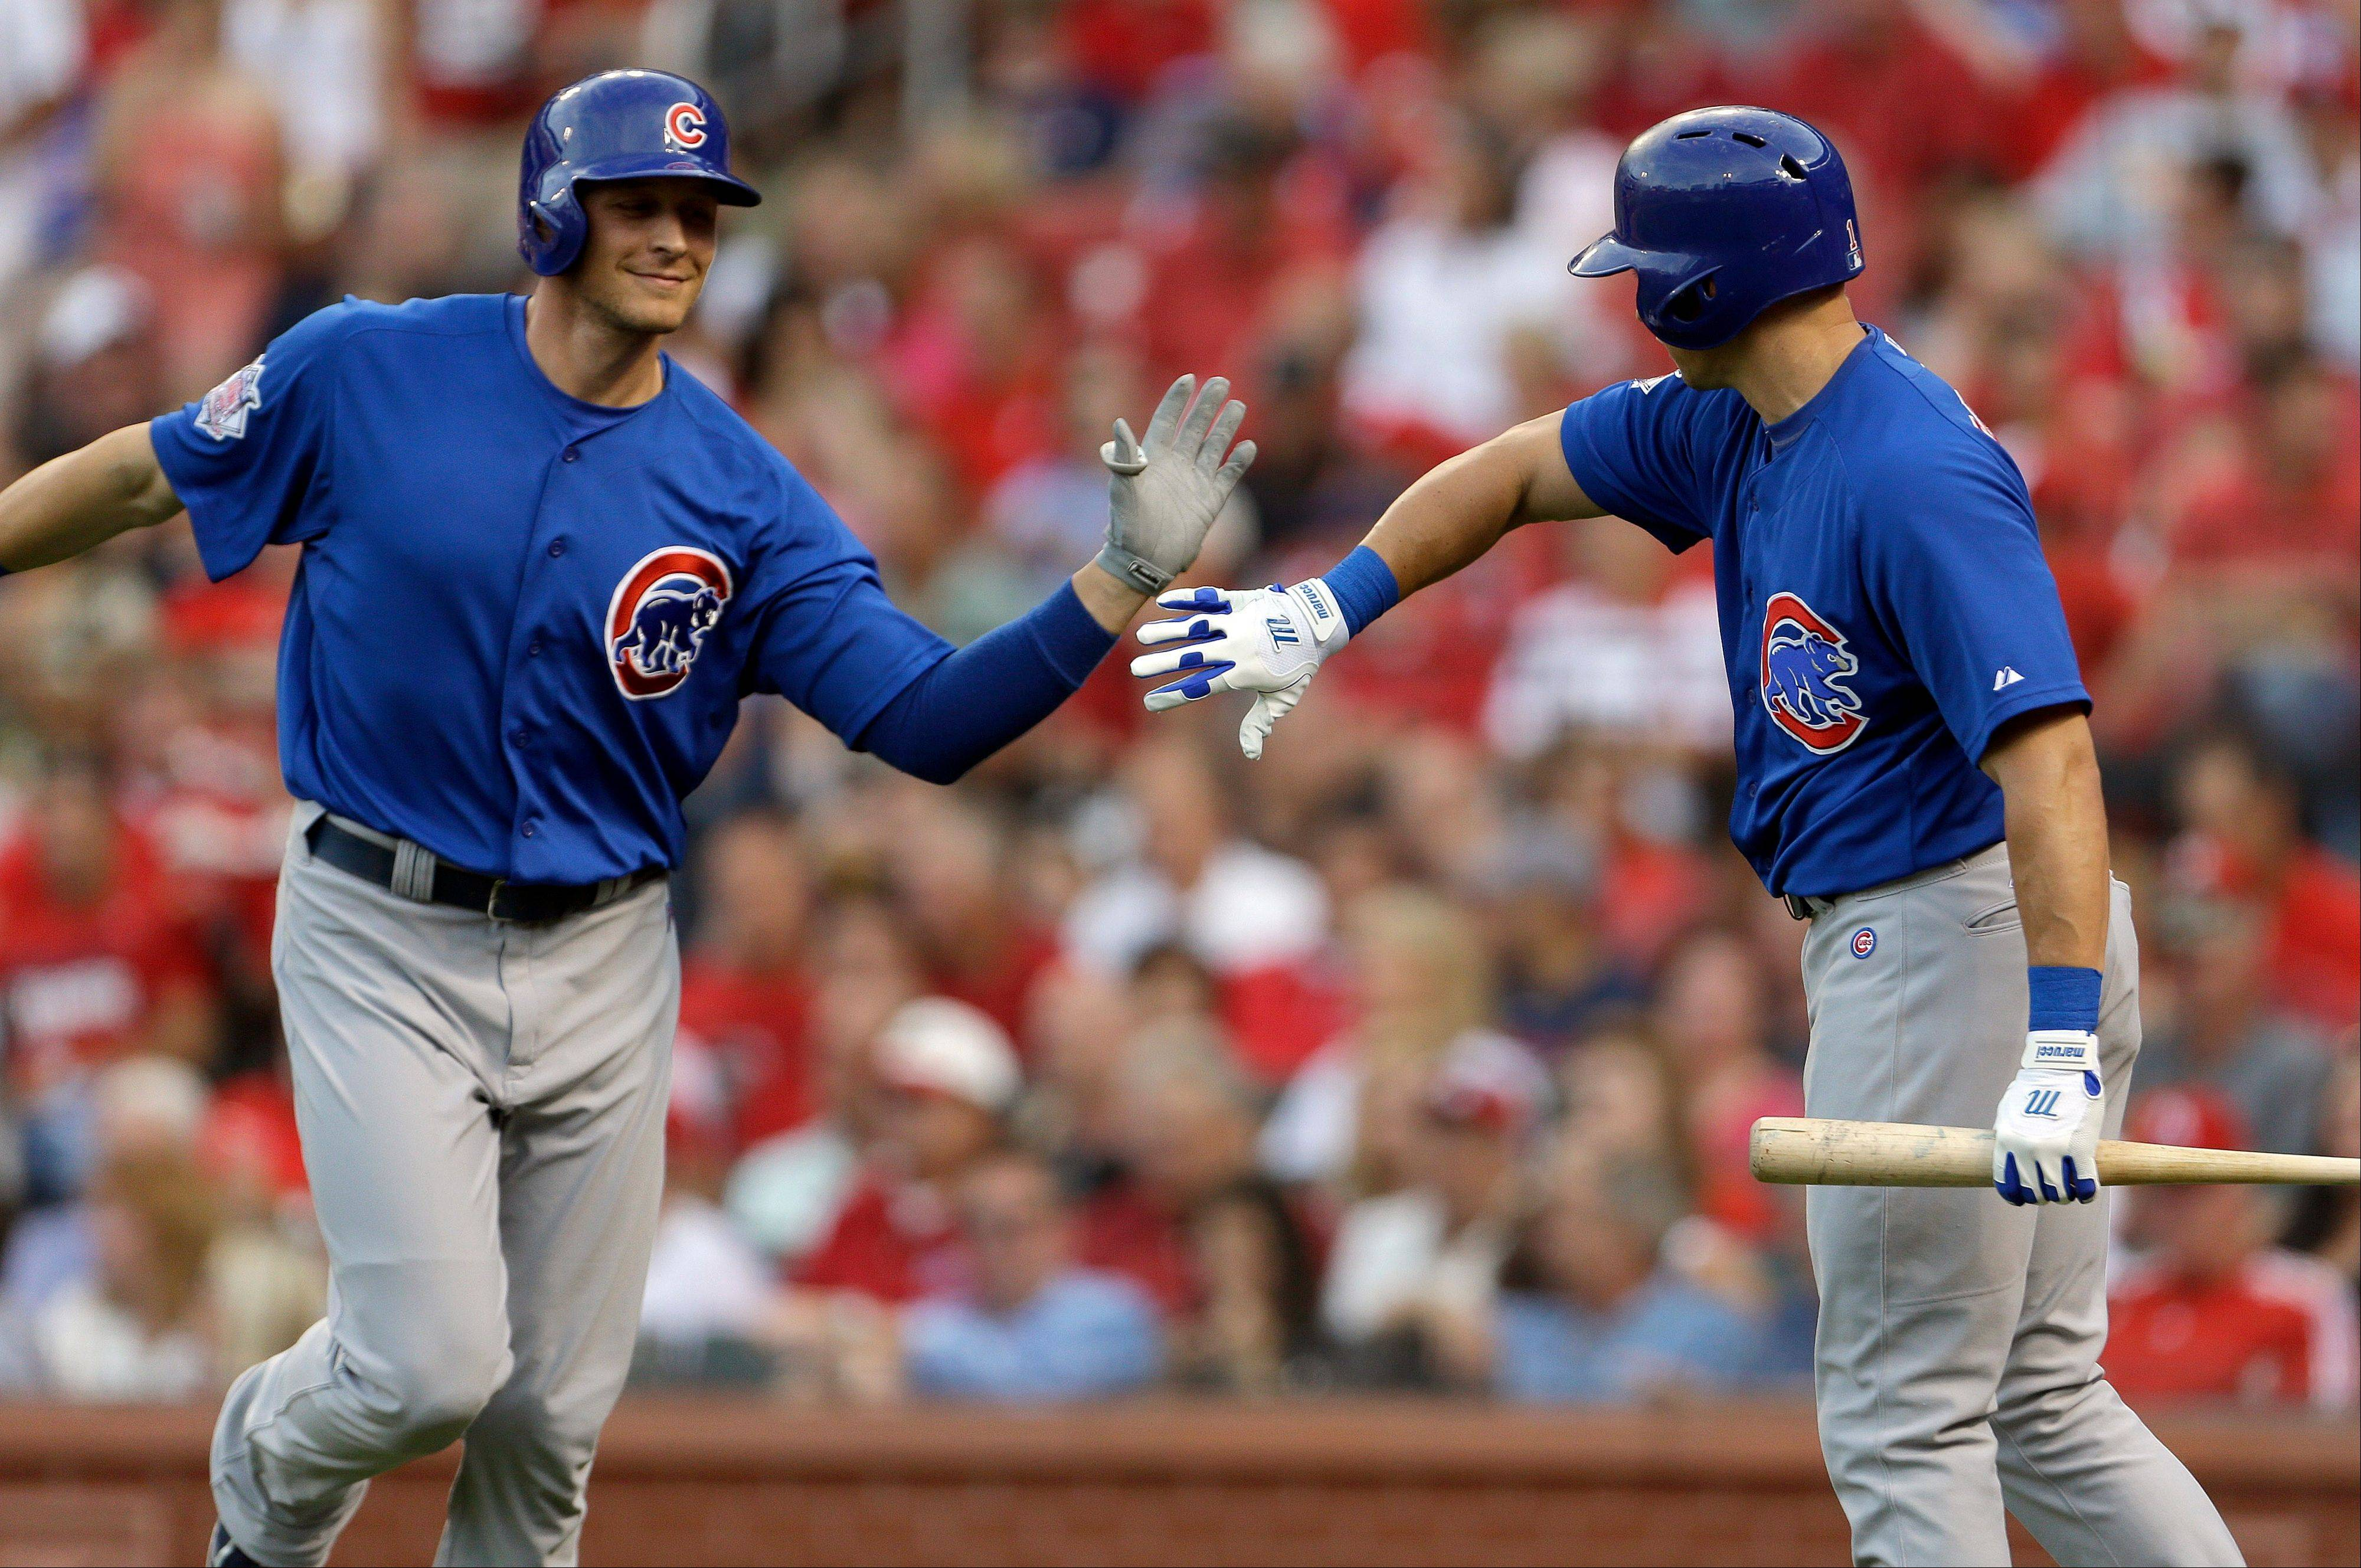 The Cubs' Ryan Sweeney, left, is congratulated by teammate Cody Ransom after hitting a two-run home run Tuesday night in St. Louis. The Cubs beat the St. Louis Cardinals 4-2.